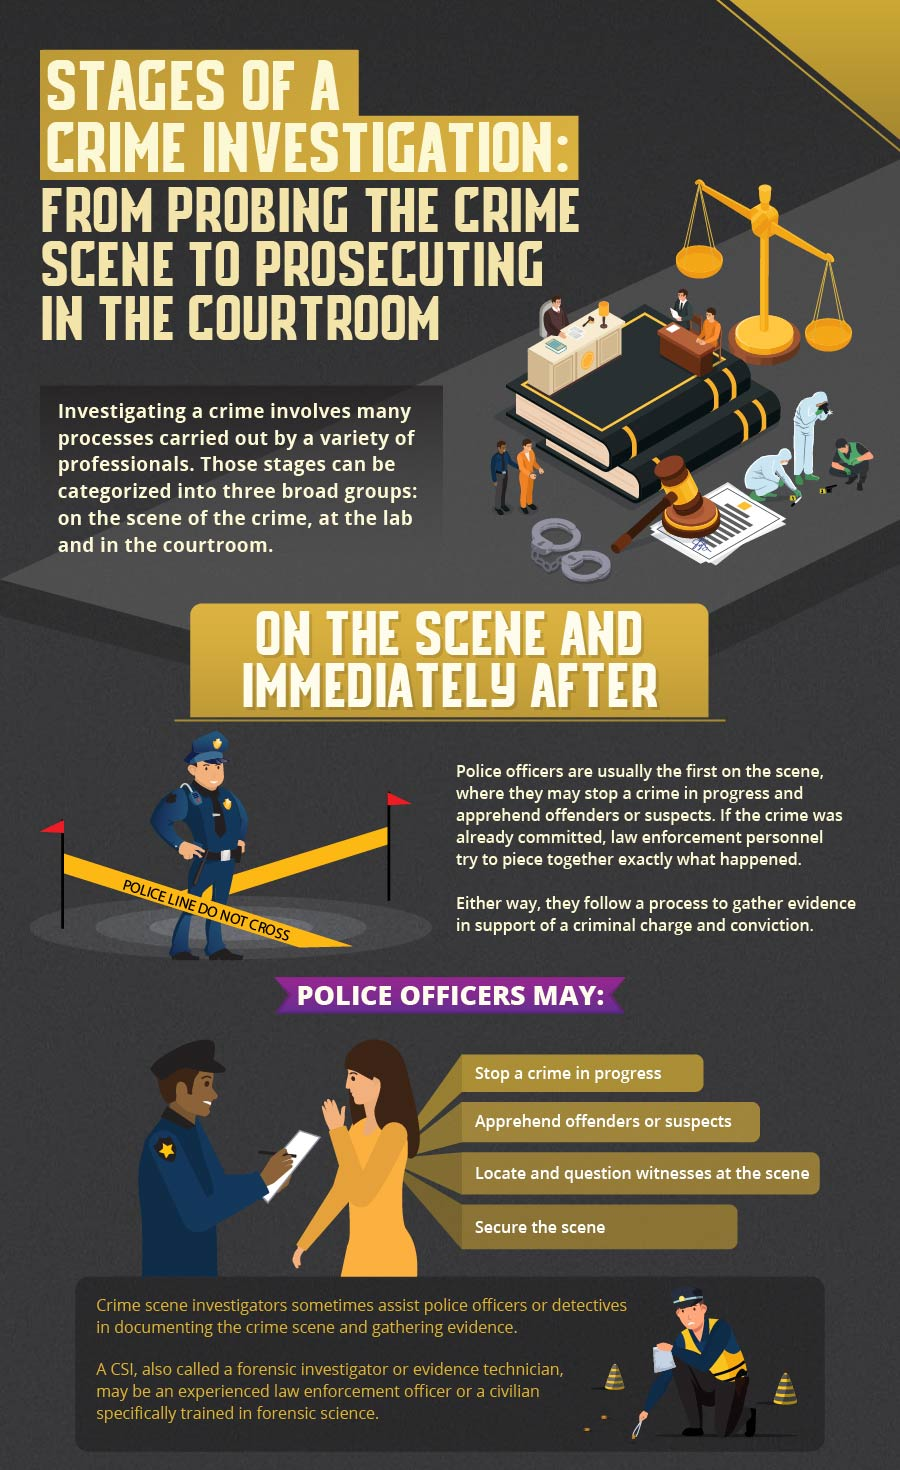 Stages of a Crime Investigation part 1.